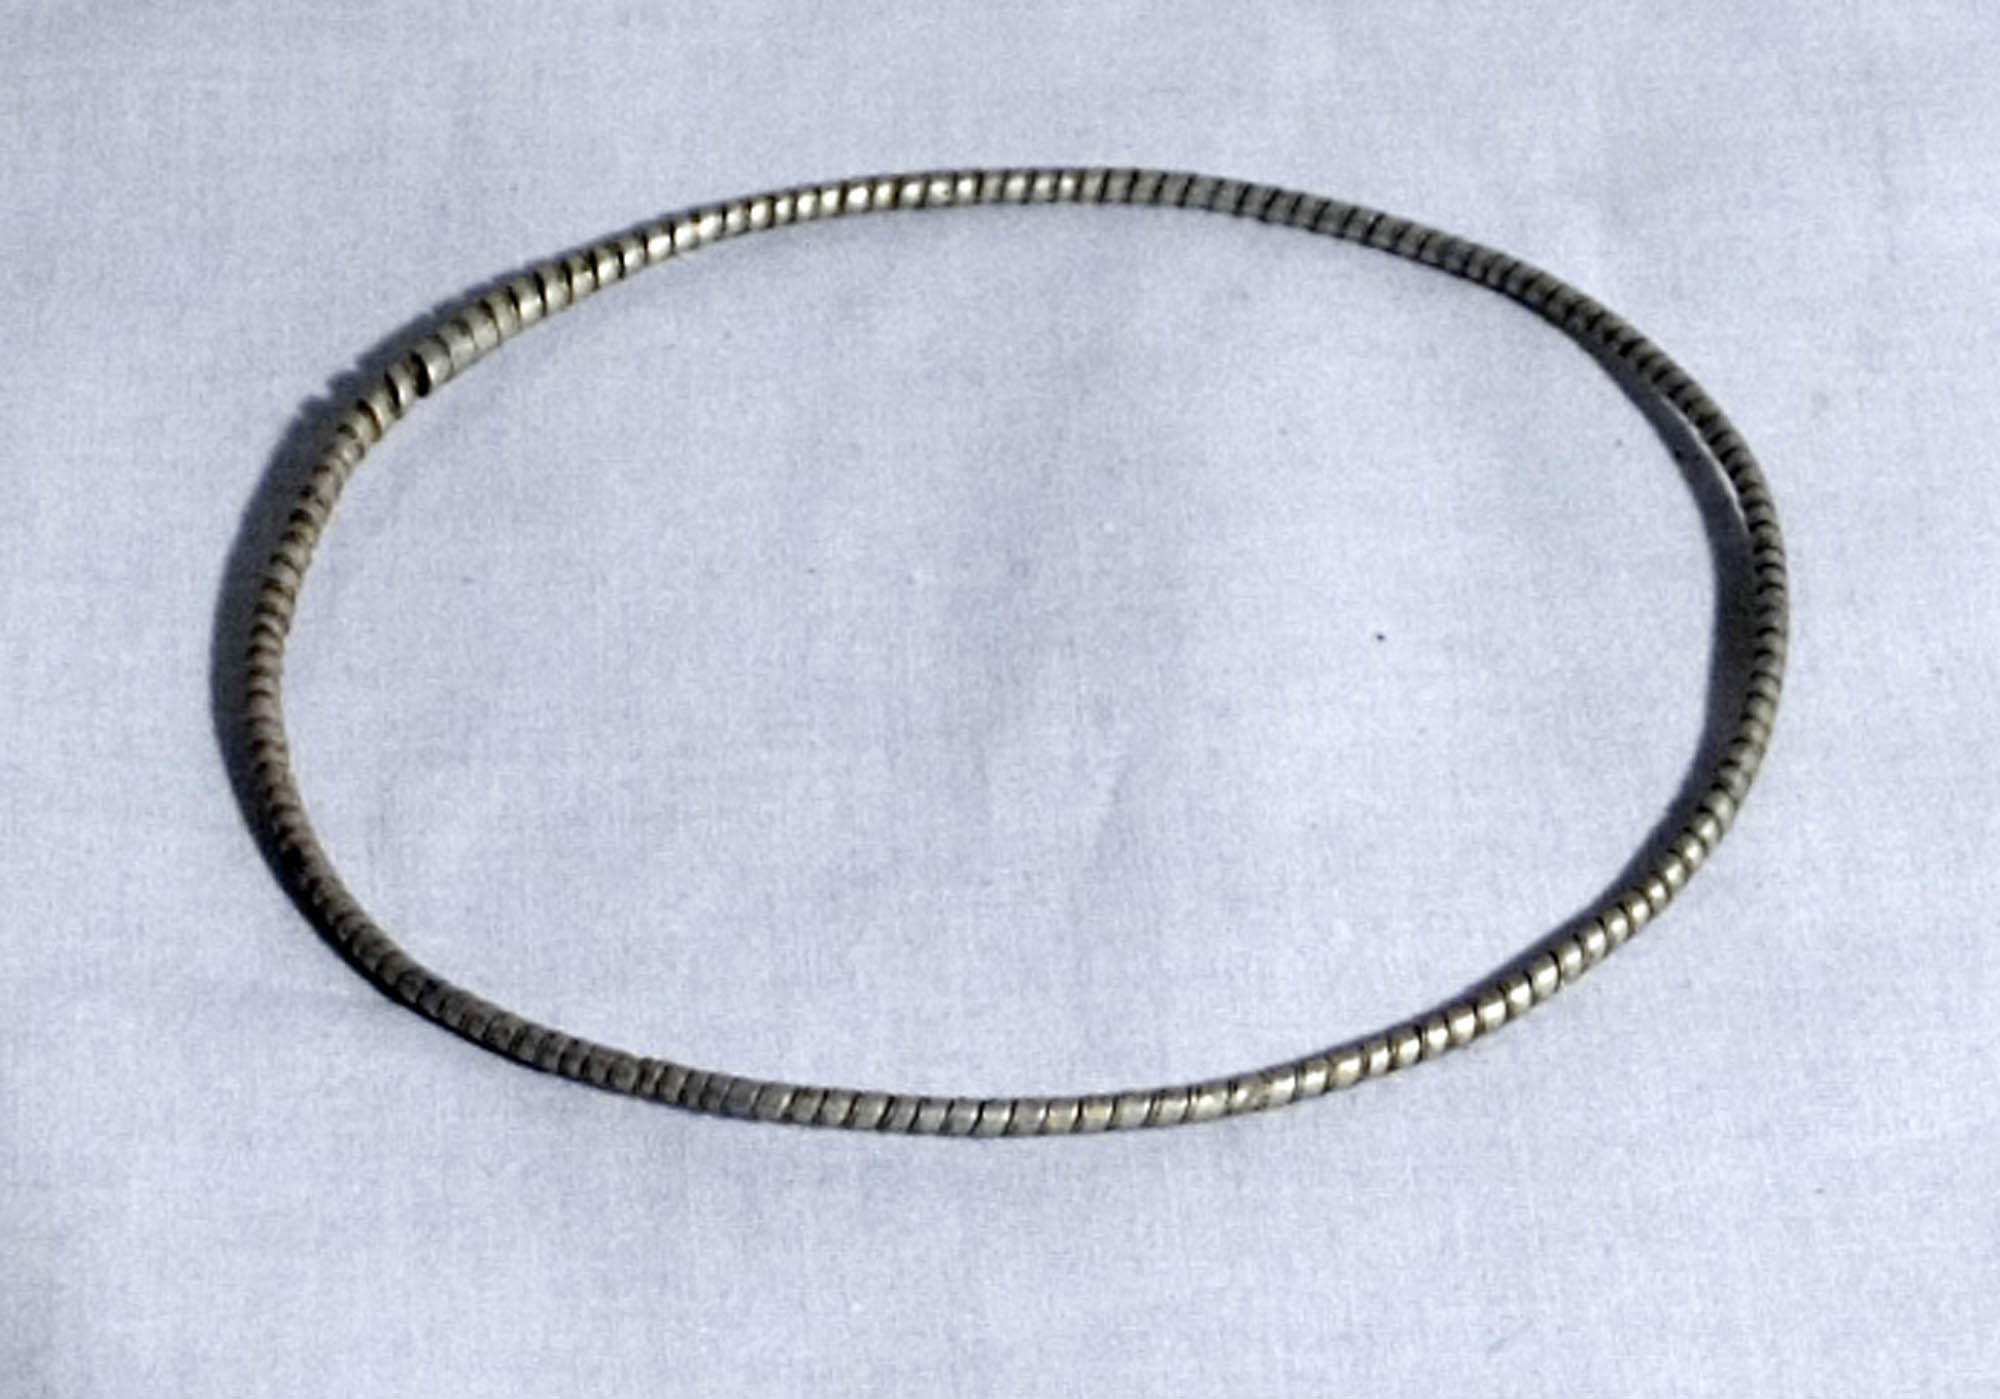 Iron anklet